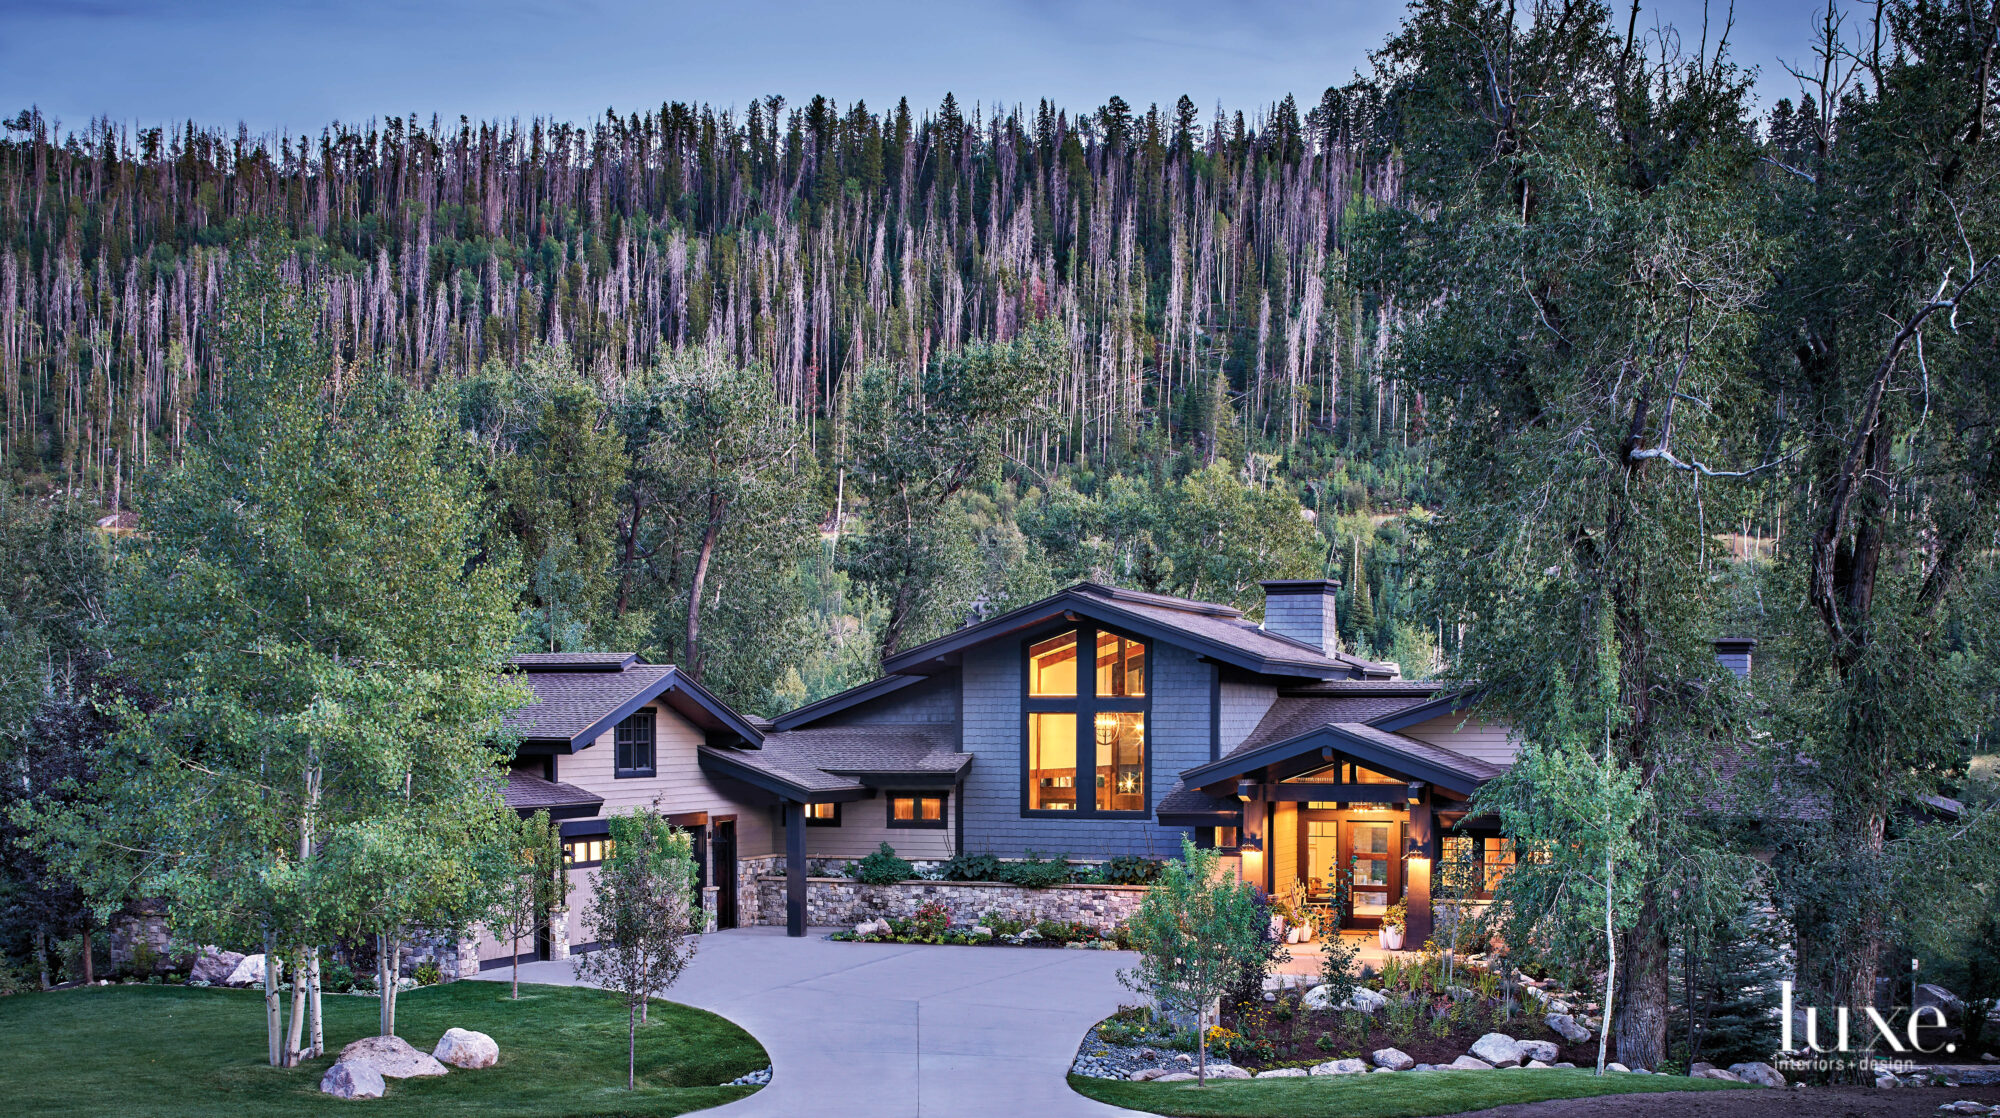 The exterior of a Steamboat Springs home